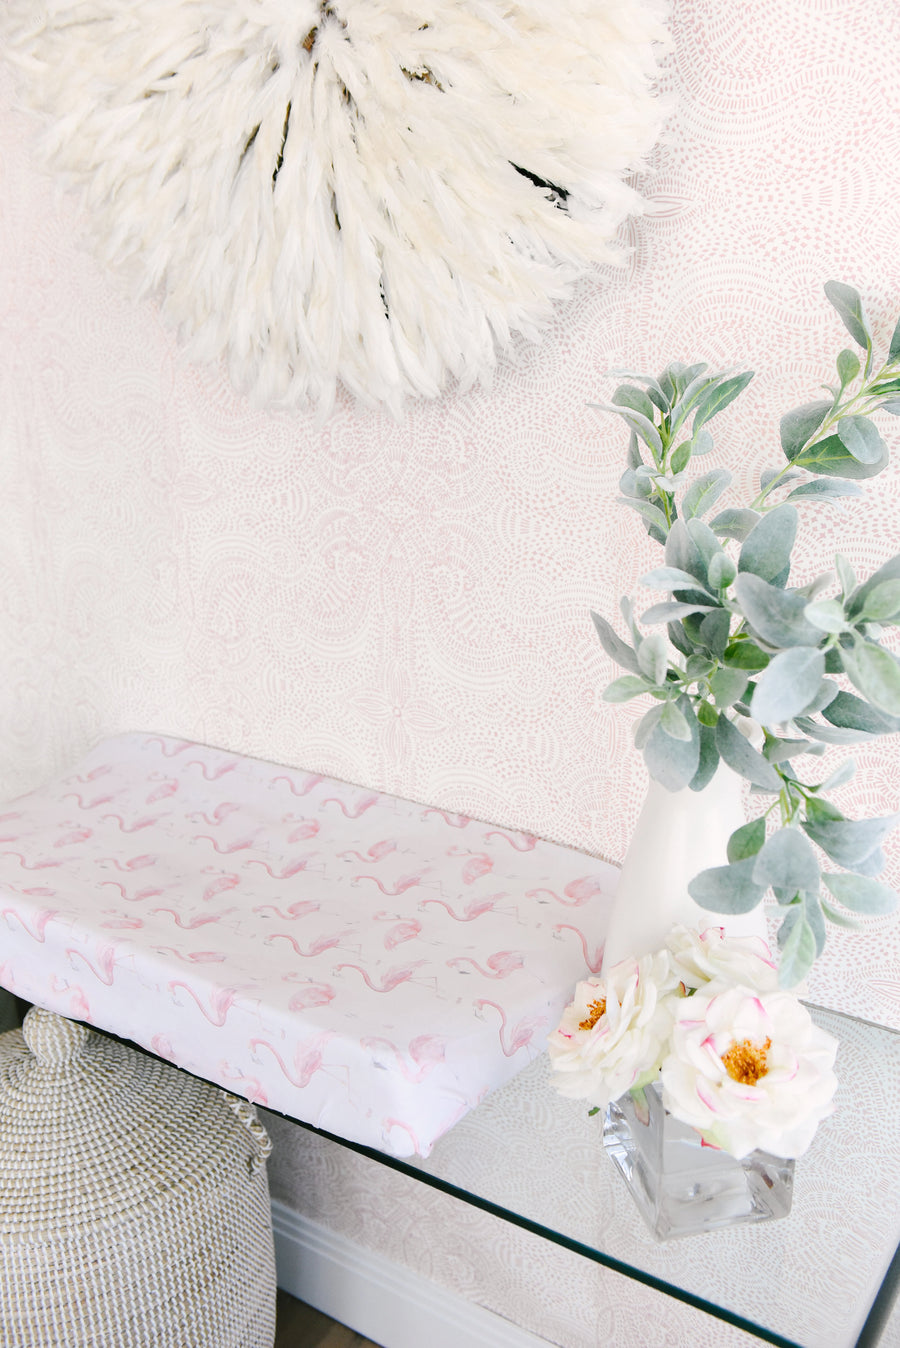 flamingo changing pad cover on table